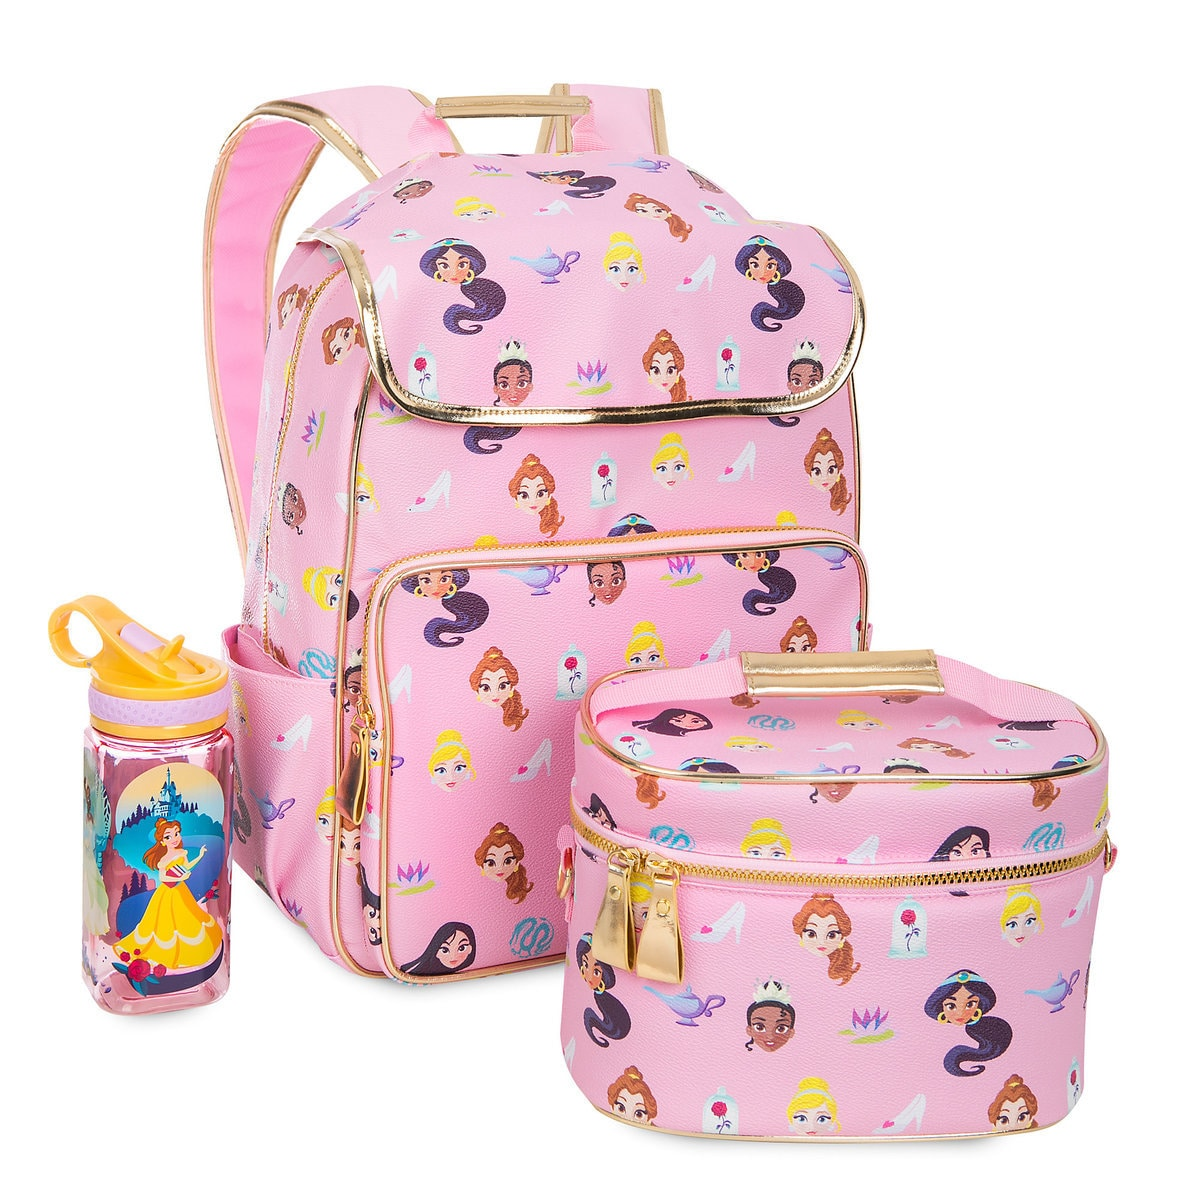 d87aef17487 Product Image of Disney Princess Back-to-School Collection   1